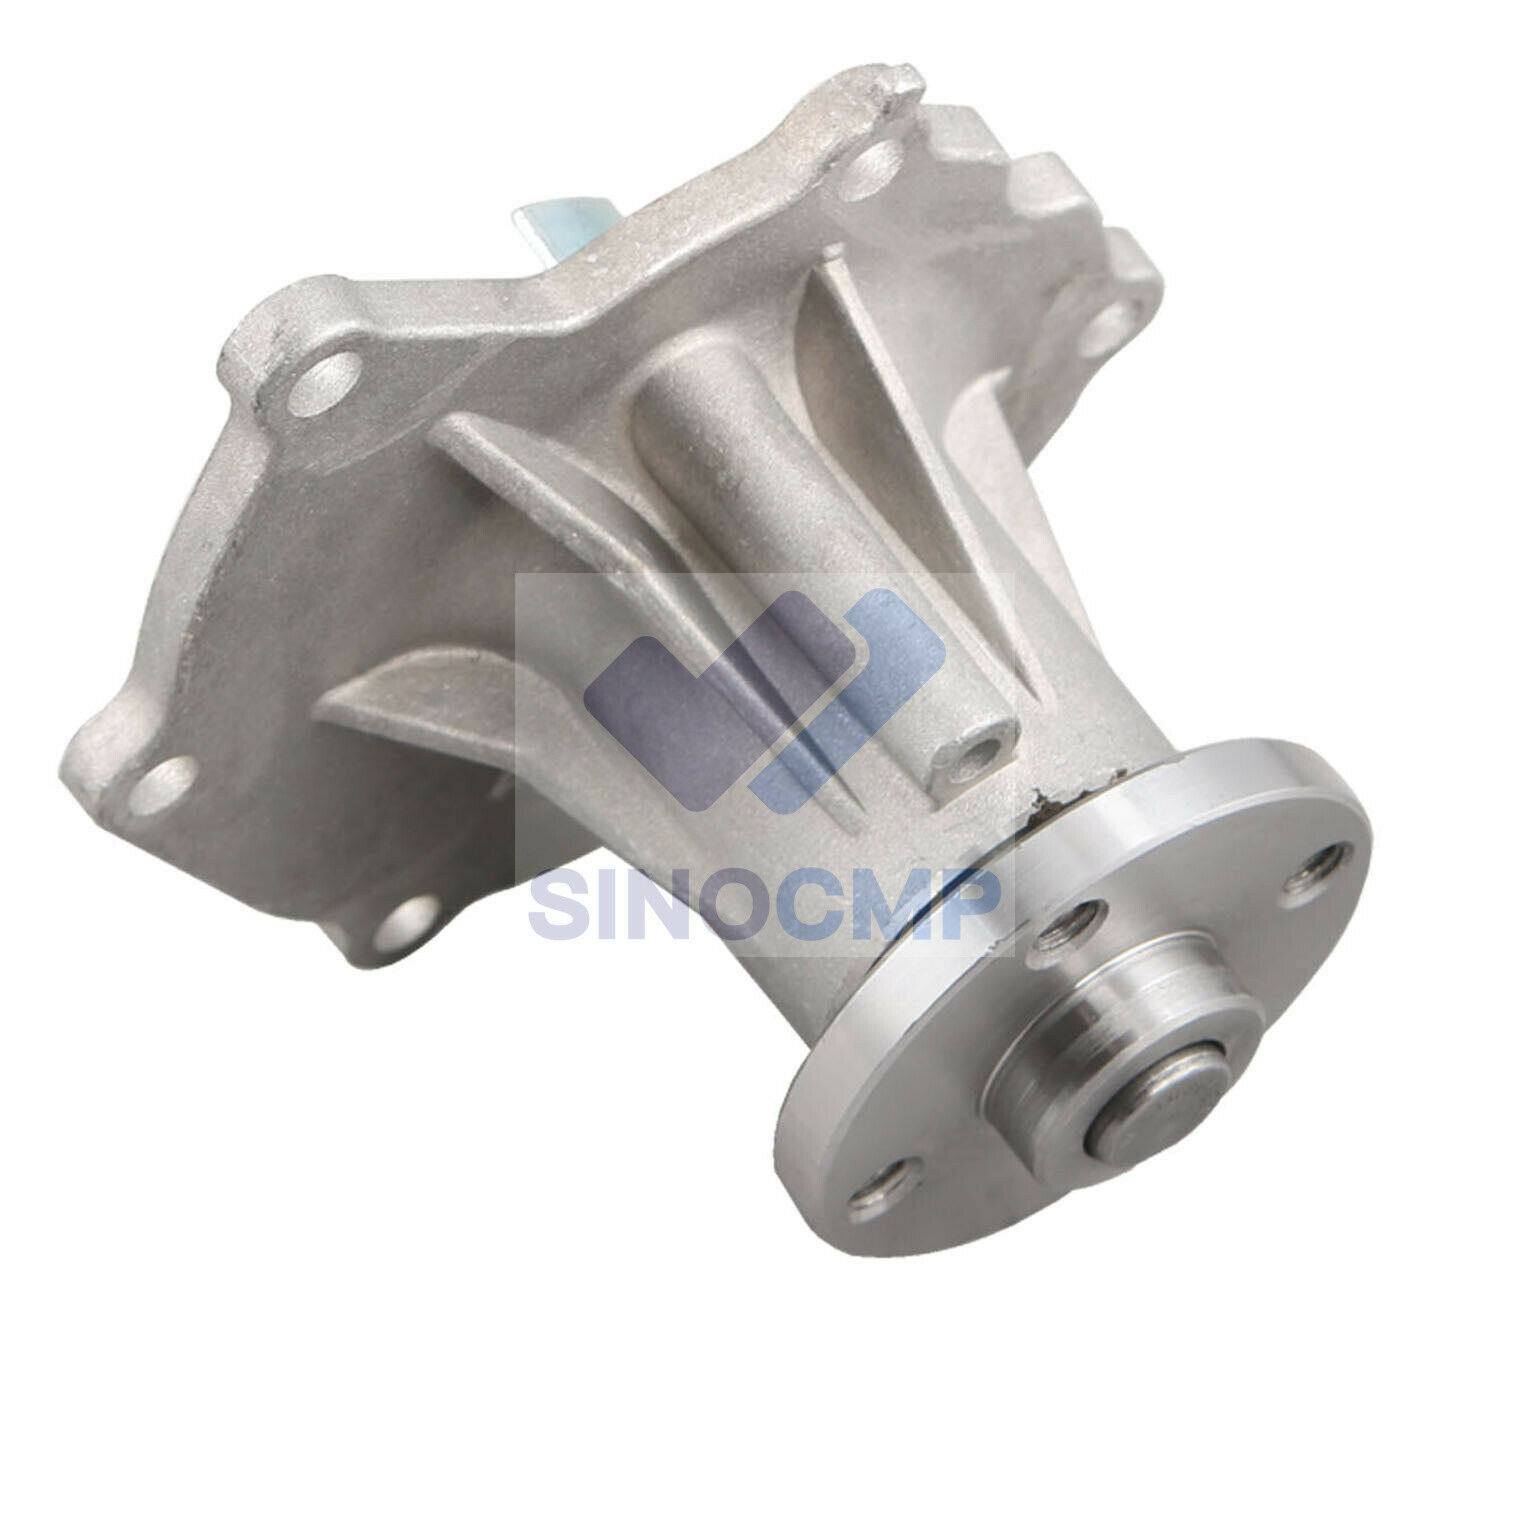 7FD 8FD 1DZ 2Z Engine Water Pump Cover for Toyota Forklift Truck 16110-78701-71